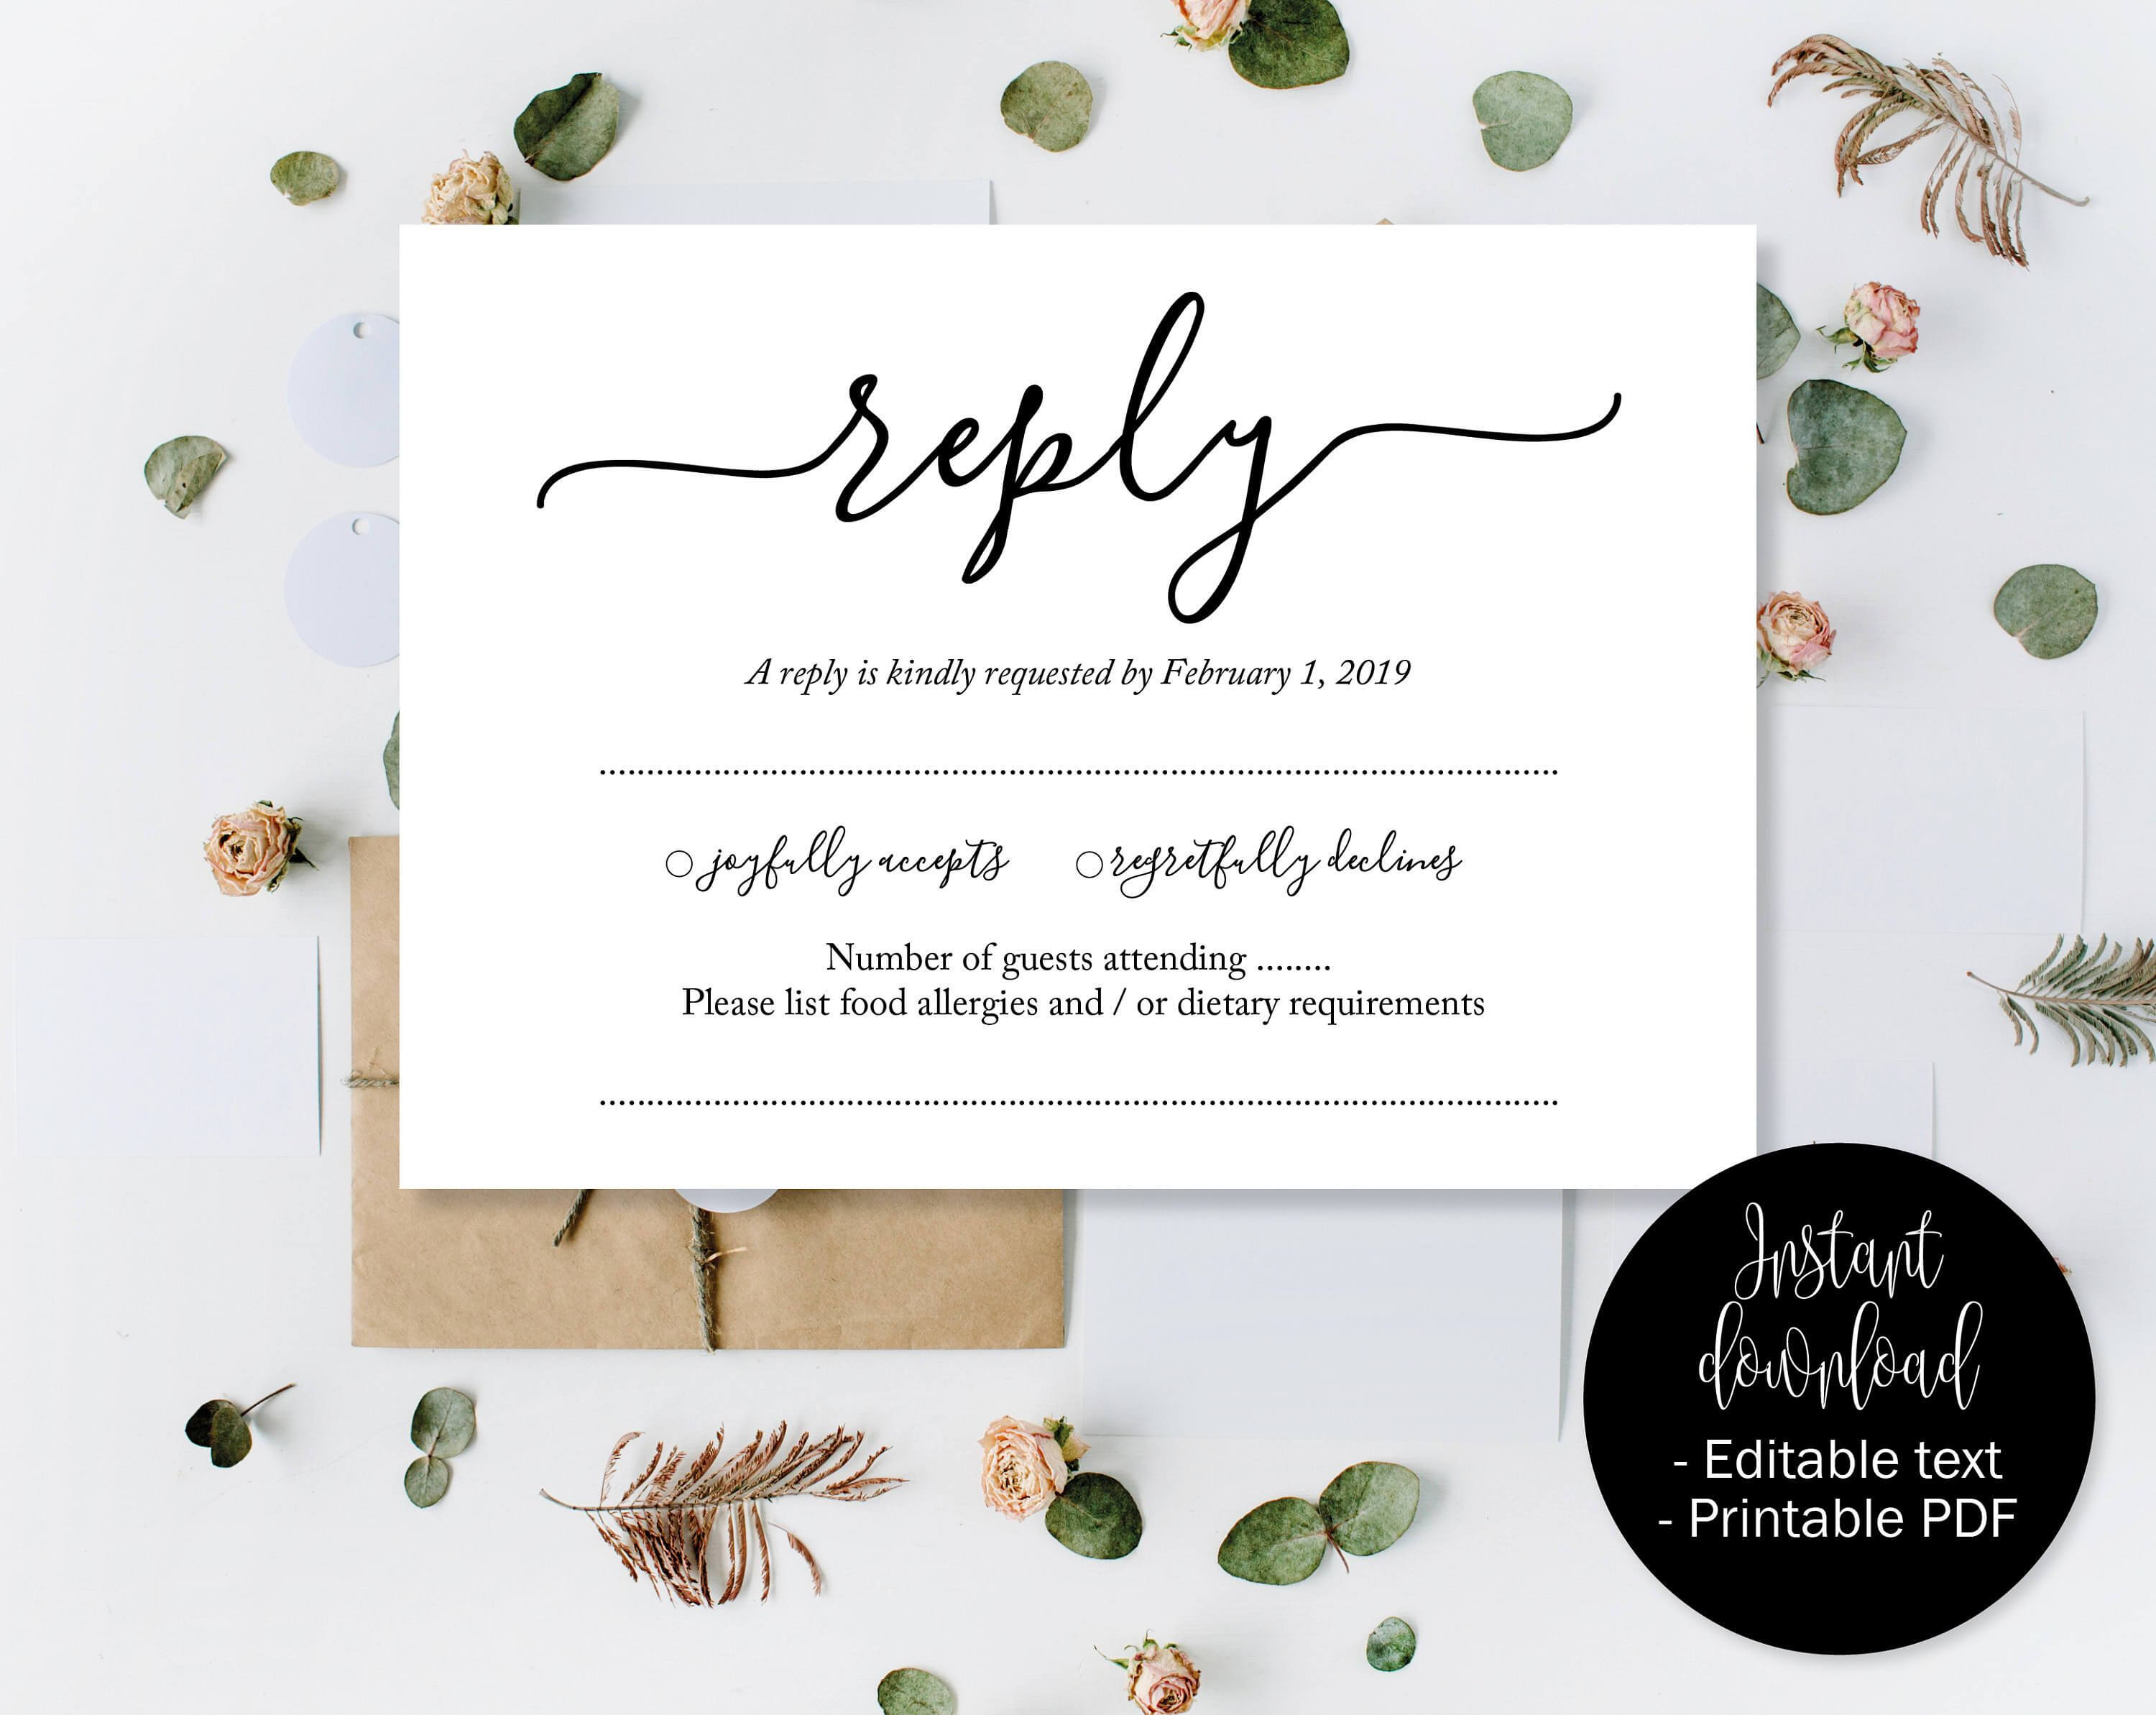 Wedding Rsvp Cards, Wedding Reply Attendance Acceptance with regard to Template For Rsvp Cards For Wedding